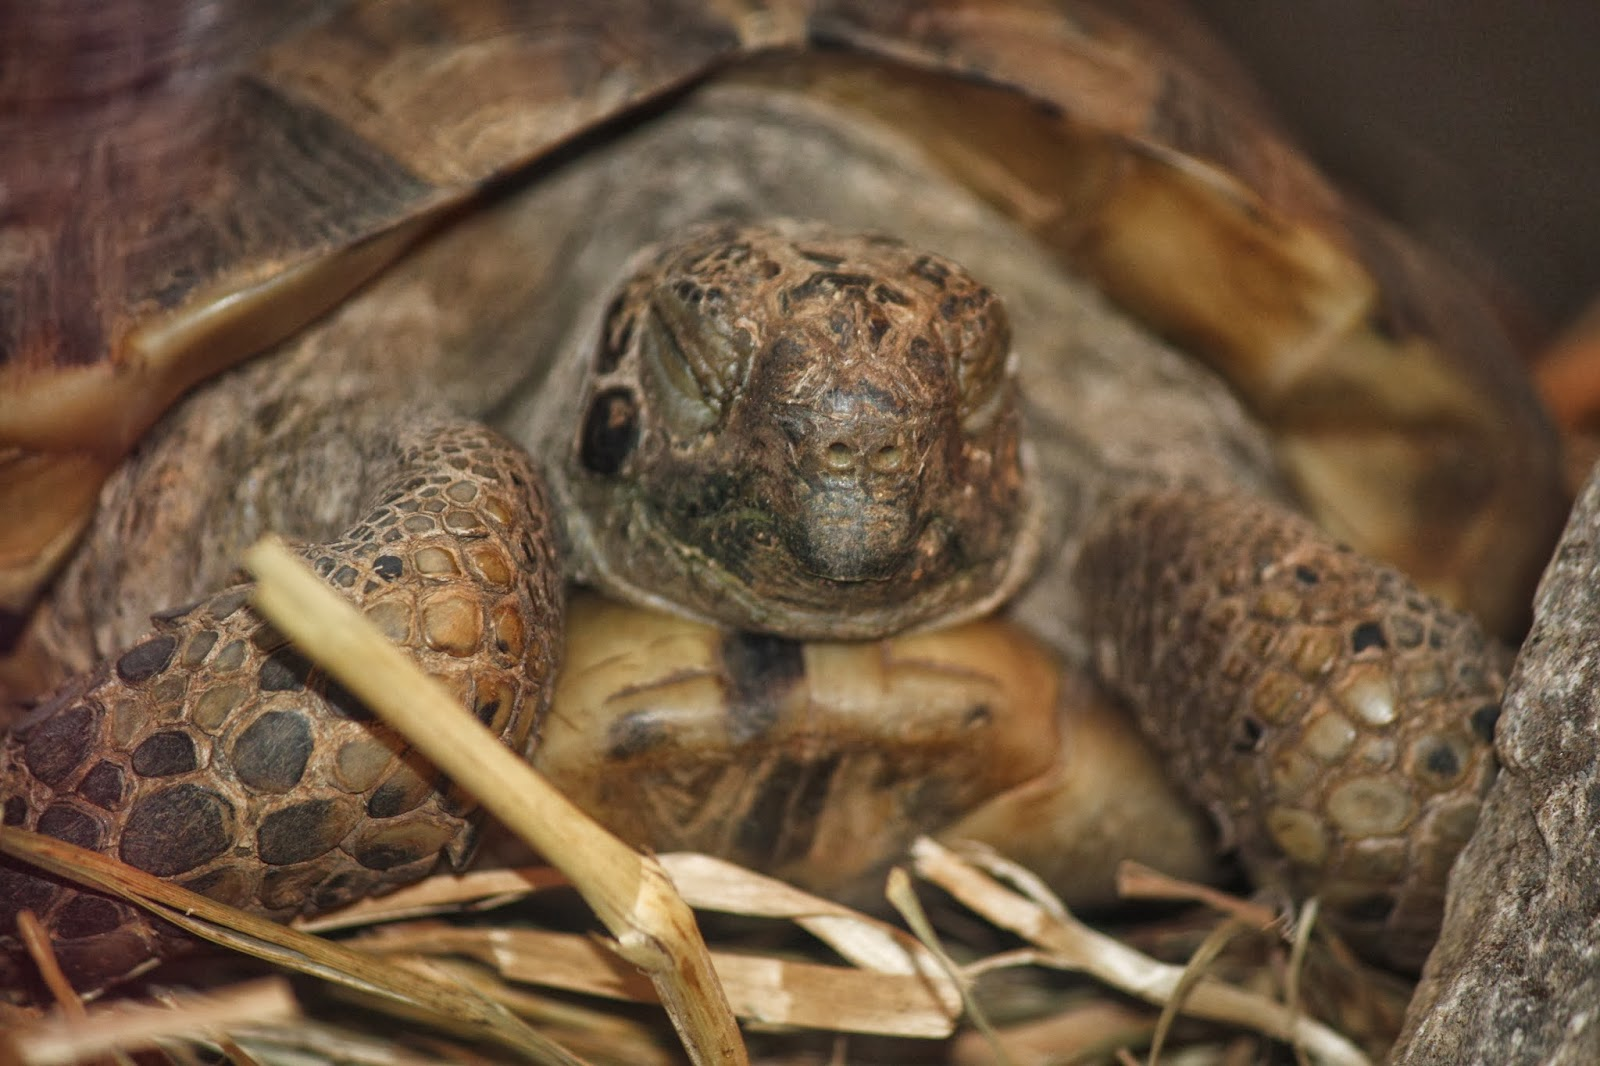 Rules of the Jungle: The Greek Tortoise.